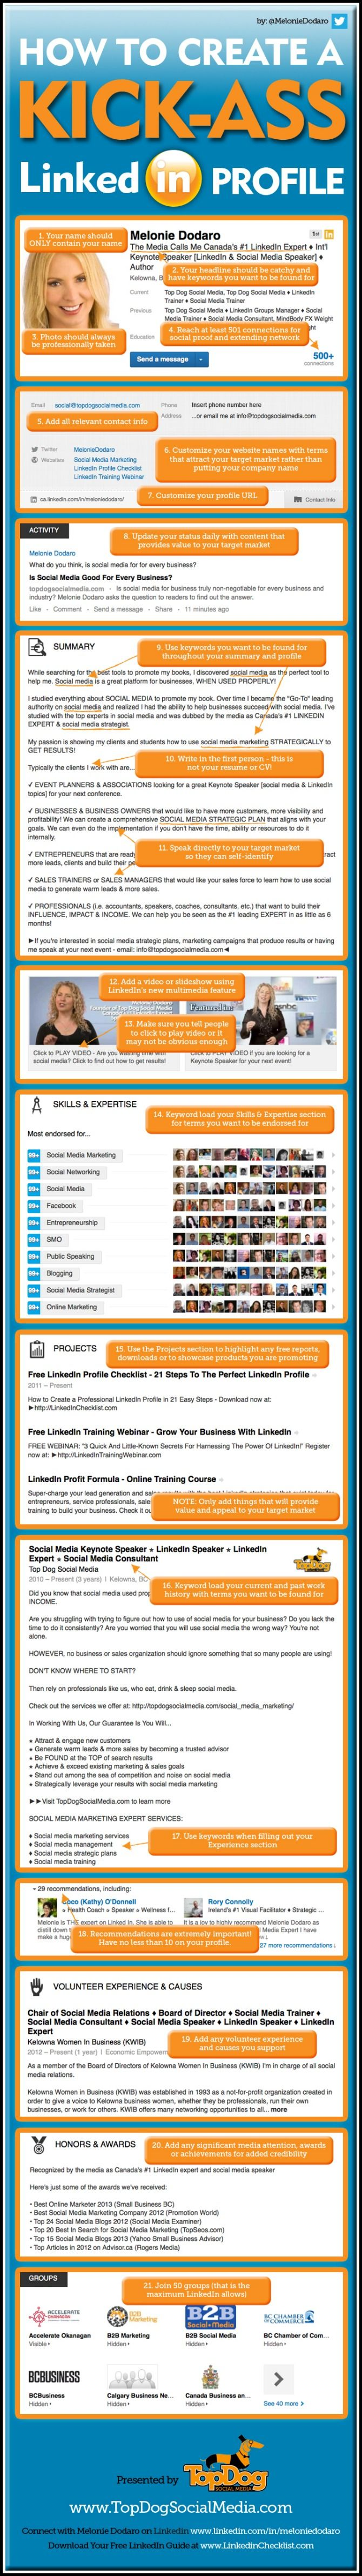 Learn how to create an amazing LinkedIn profile. This infographic http://90dayentrepreneur.com/create-an-amazing-linkedin-profile-infographic/ covers everything!